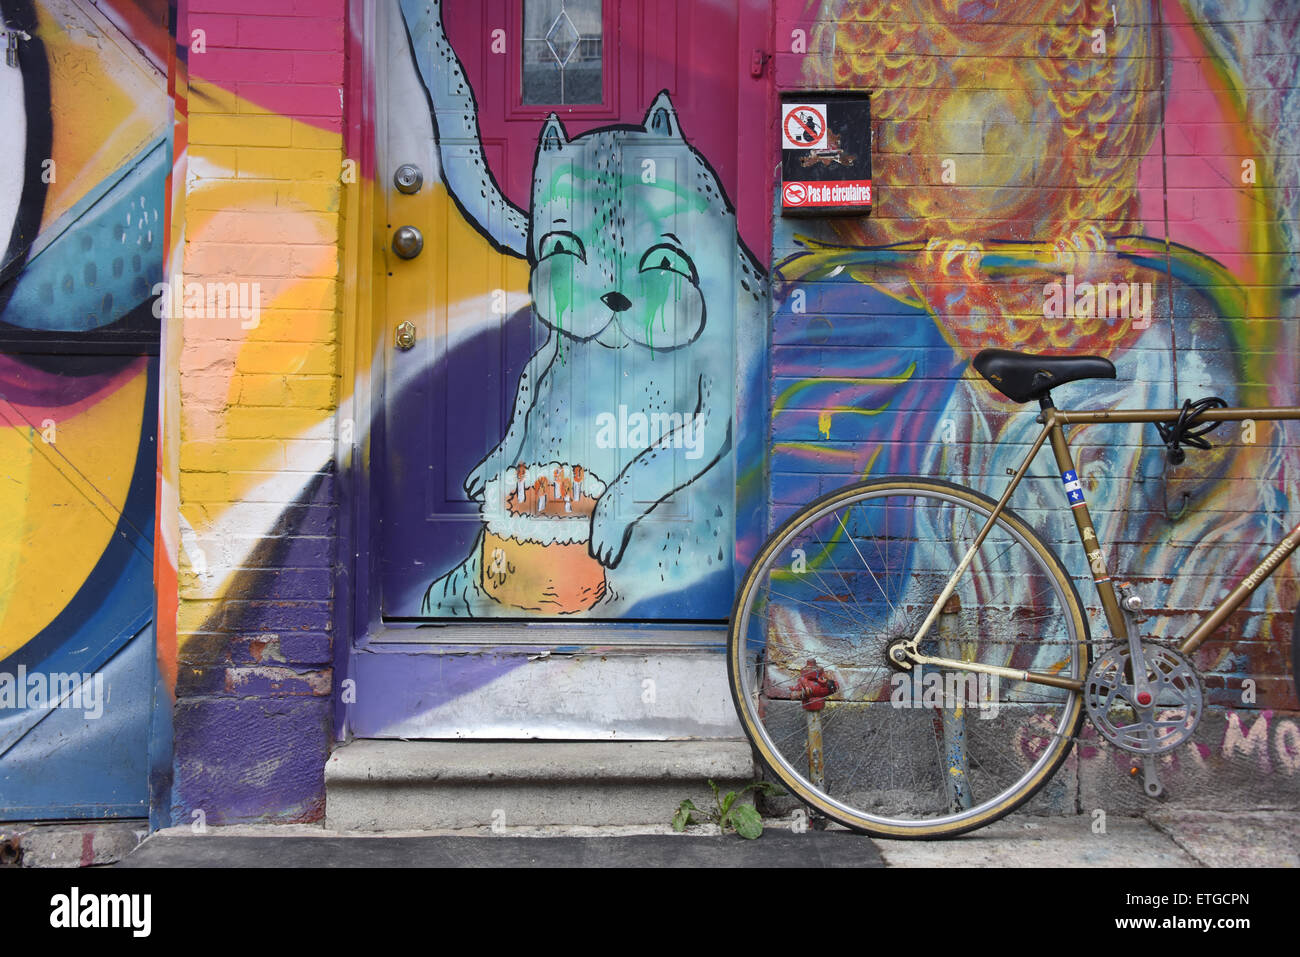 Typical scene Plateau Mont Royal Montreal, Canada. - Stock Image